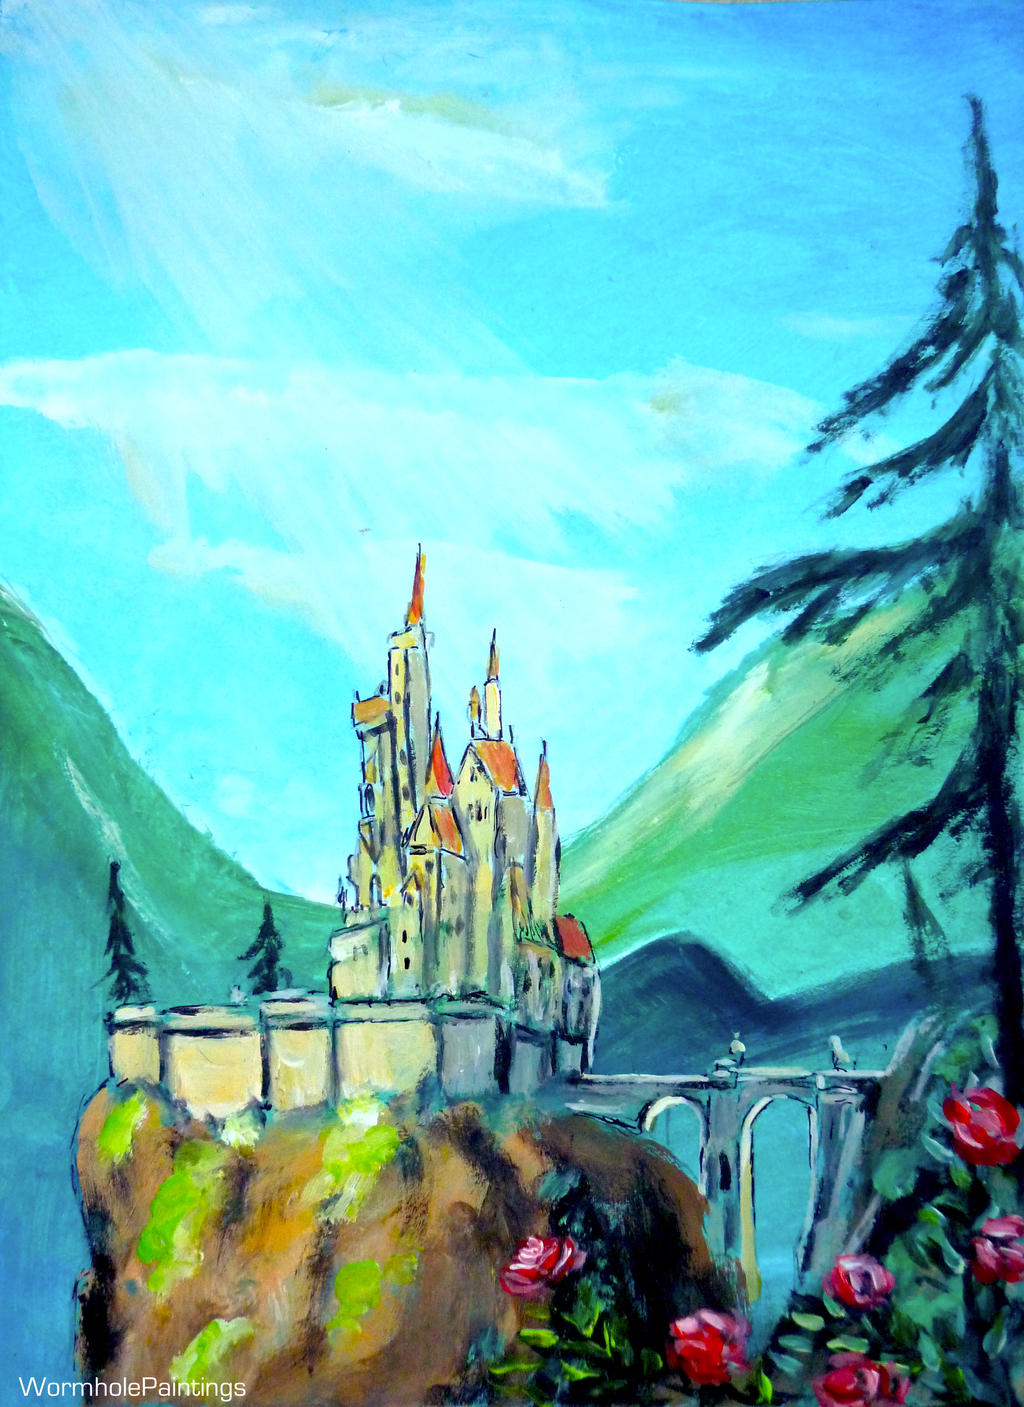 wormholepaintings beauty and the beast castle by wormholepaintings - Traditional Castle 2016